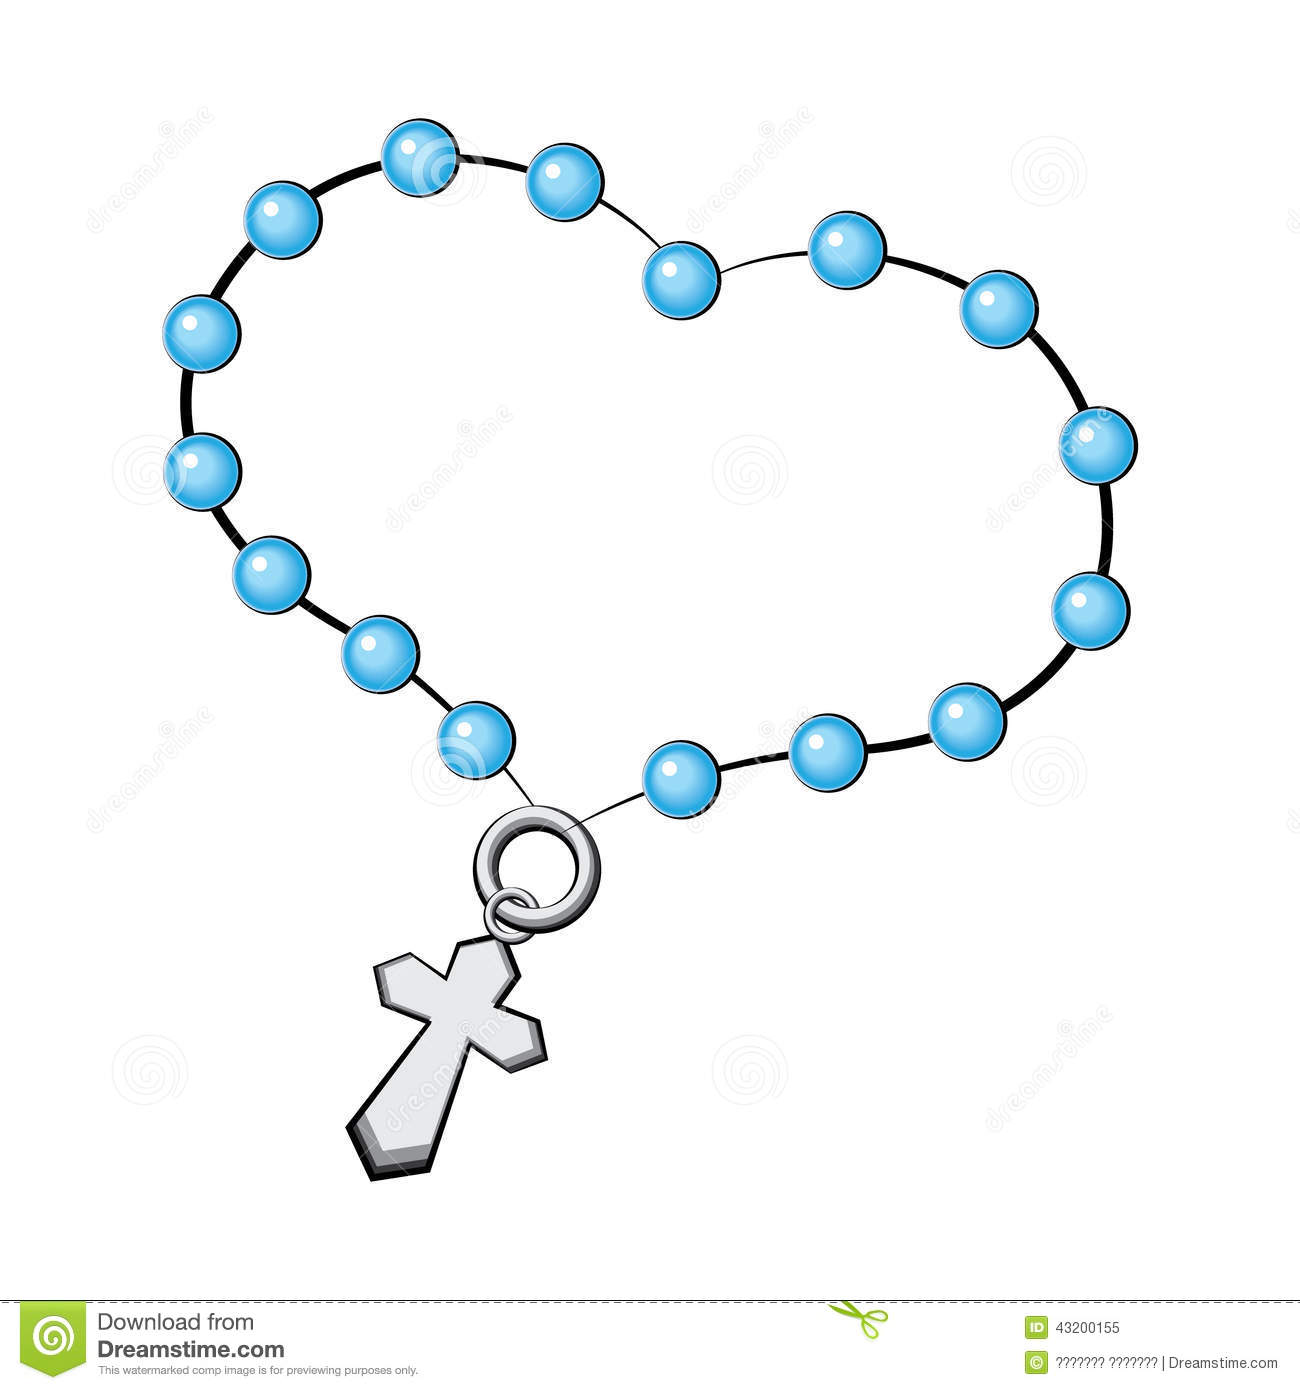 rosary beads drawing at getdrawings com free for personal use rh getdrawings com clipart rosary beads rosary clipart free